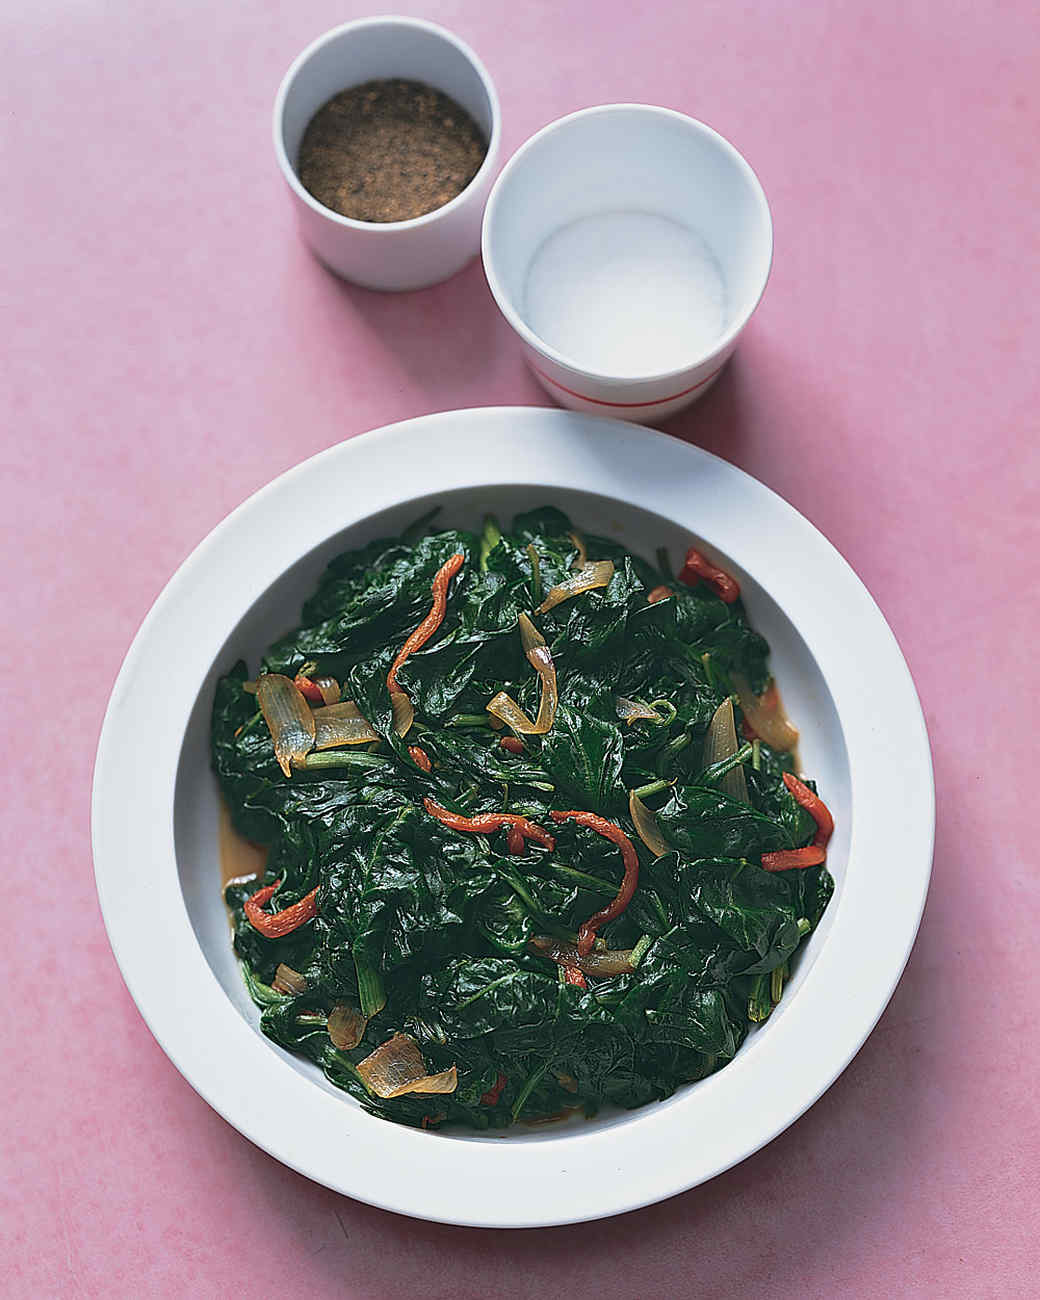 Sauteed Spinach with Roasted Red Pepper